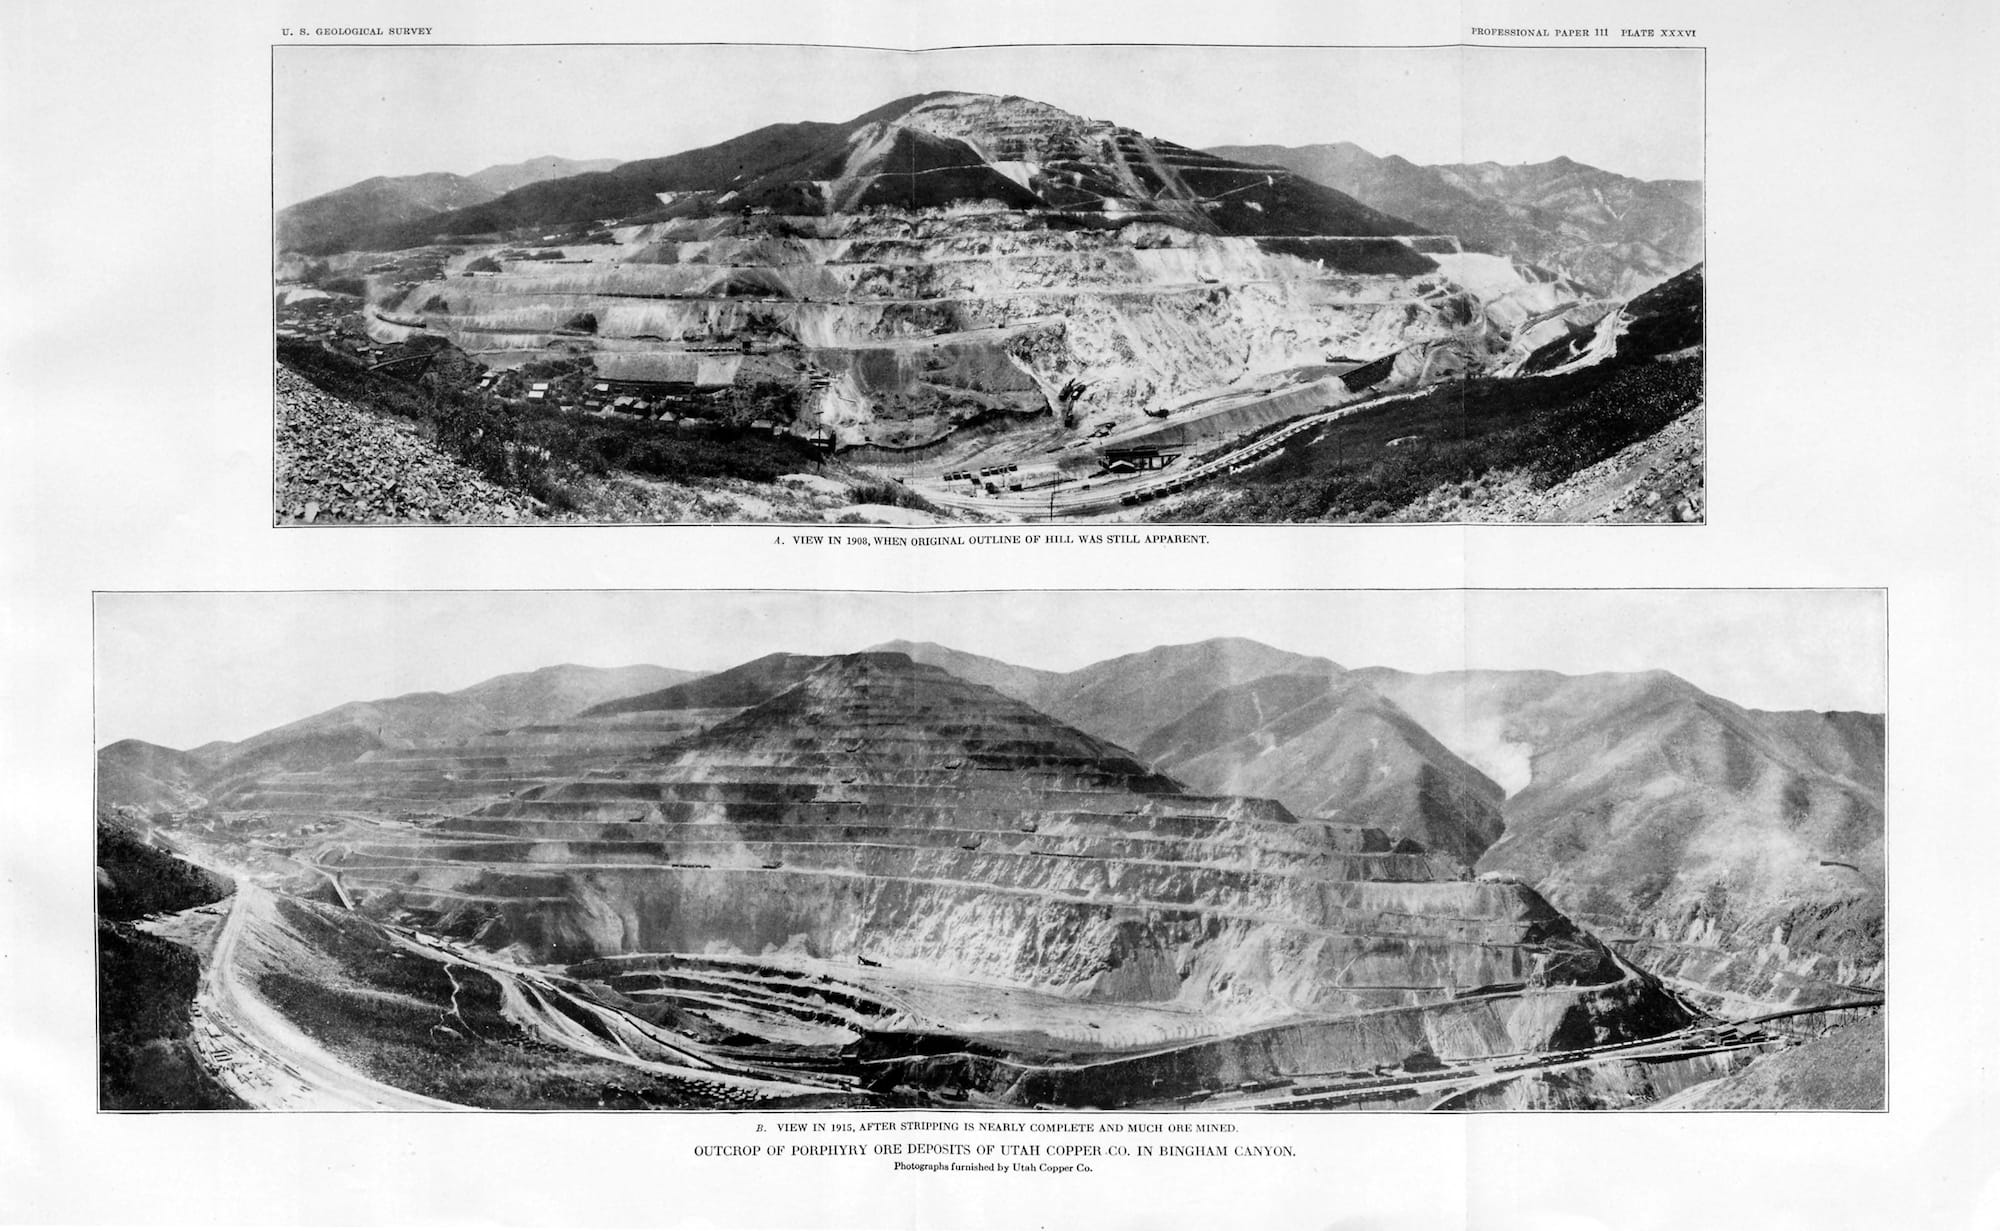 "Utah Copper Company's porphyry ore deposits in Bingham Canyon. Top: view in 1908, when original outline of hill was still apparent, and (below) in 1915, after stripping was nearly complete. Plate XXXVI from Department of the Interior/US Geological Survey report ""The Ore Deposits of Utah,"" 1920. © Department of the Interior/US Geological Survey"